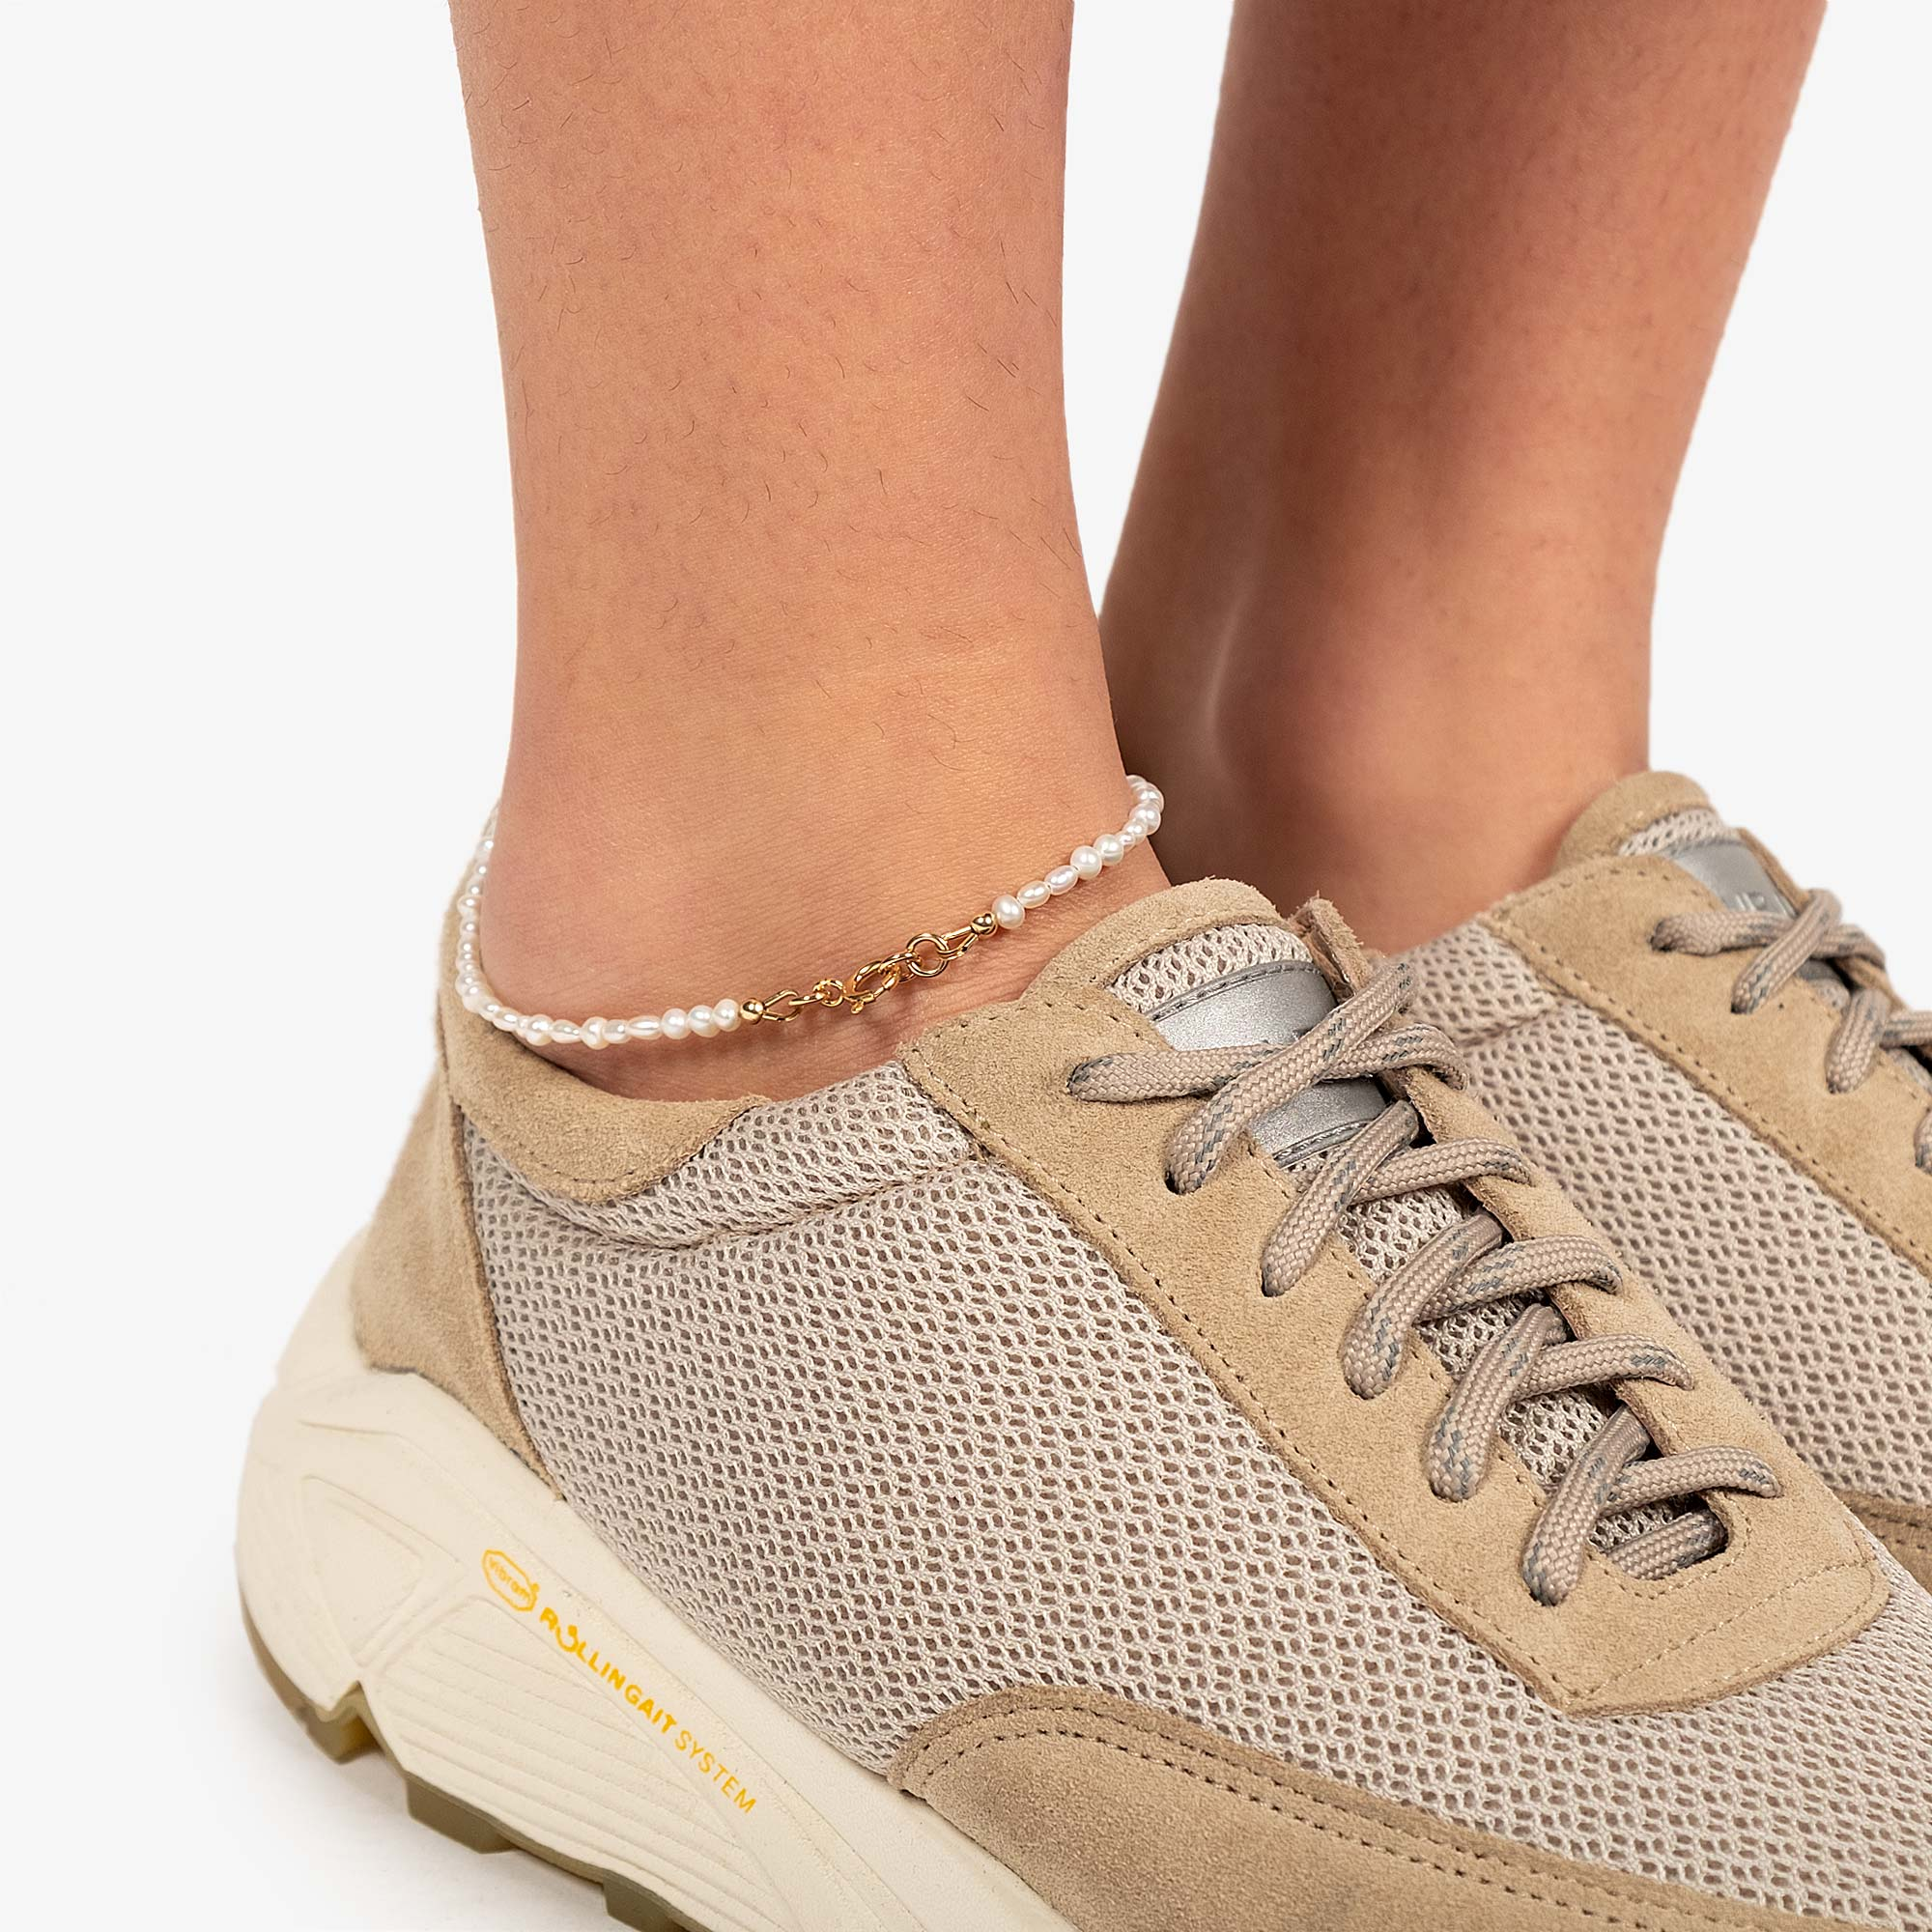 Wolf Circus Renata Anklet - Freshwater Pearl / Gold 3